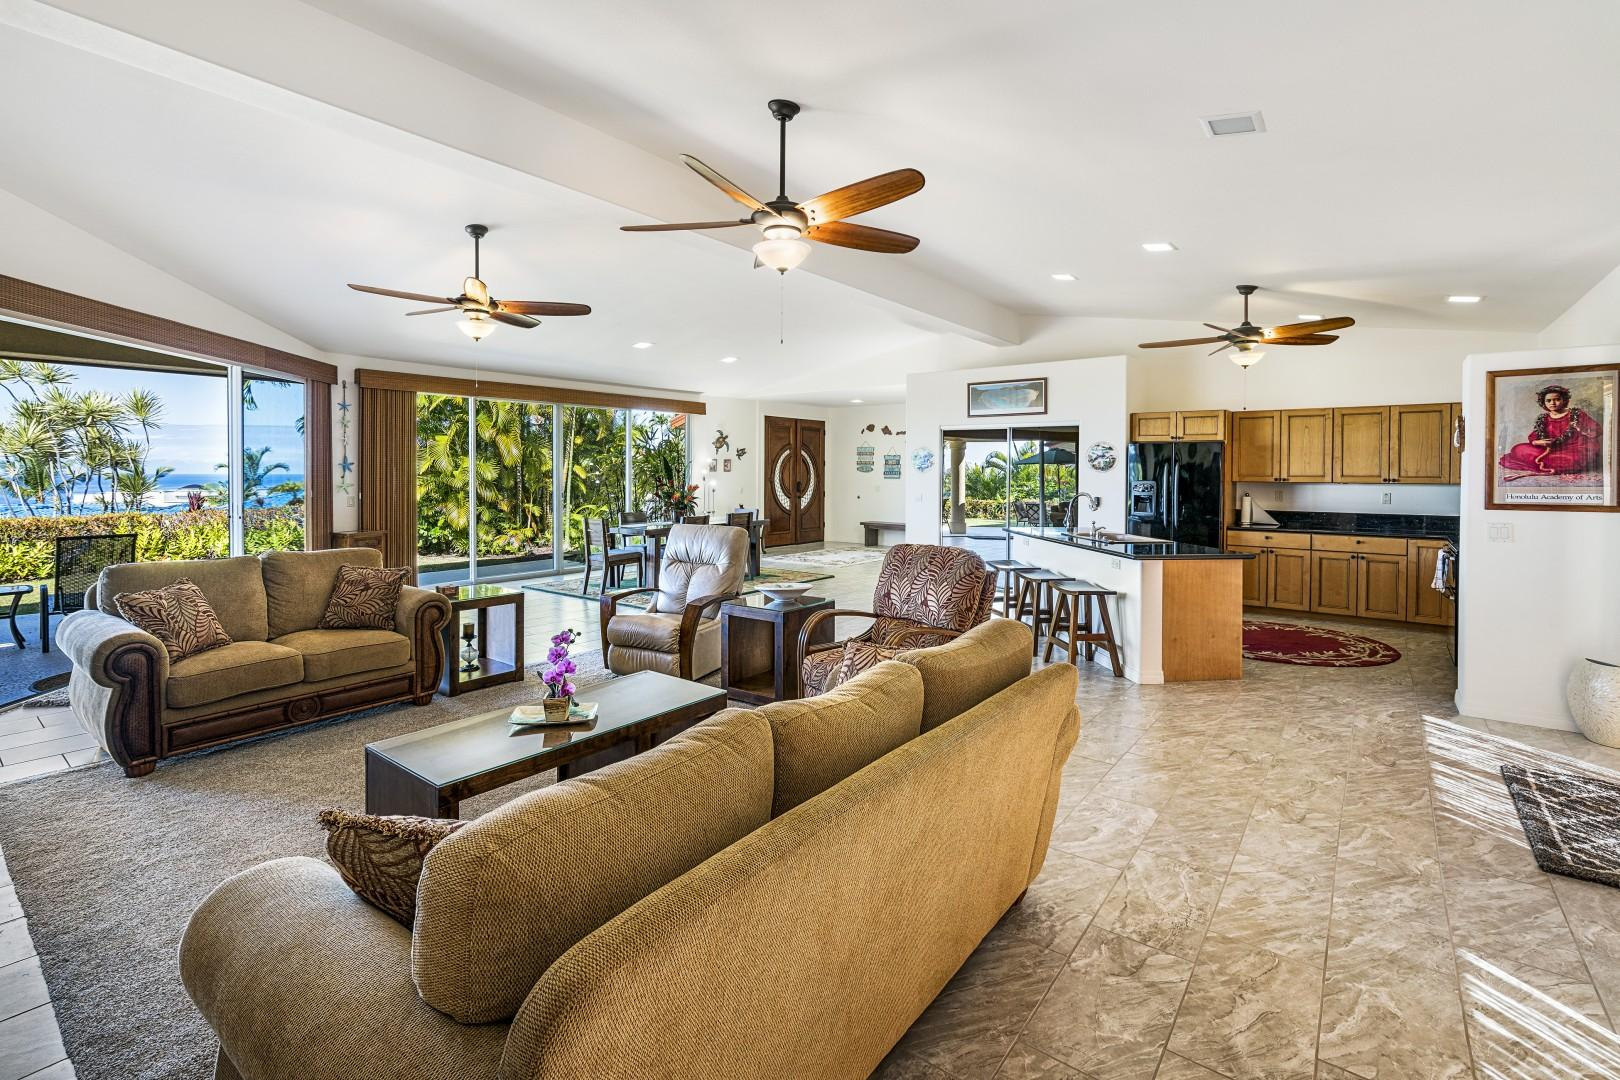 Ceiling fans and Air conditioning throughout